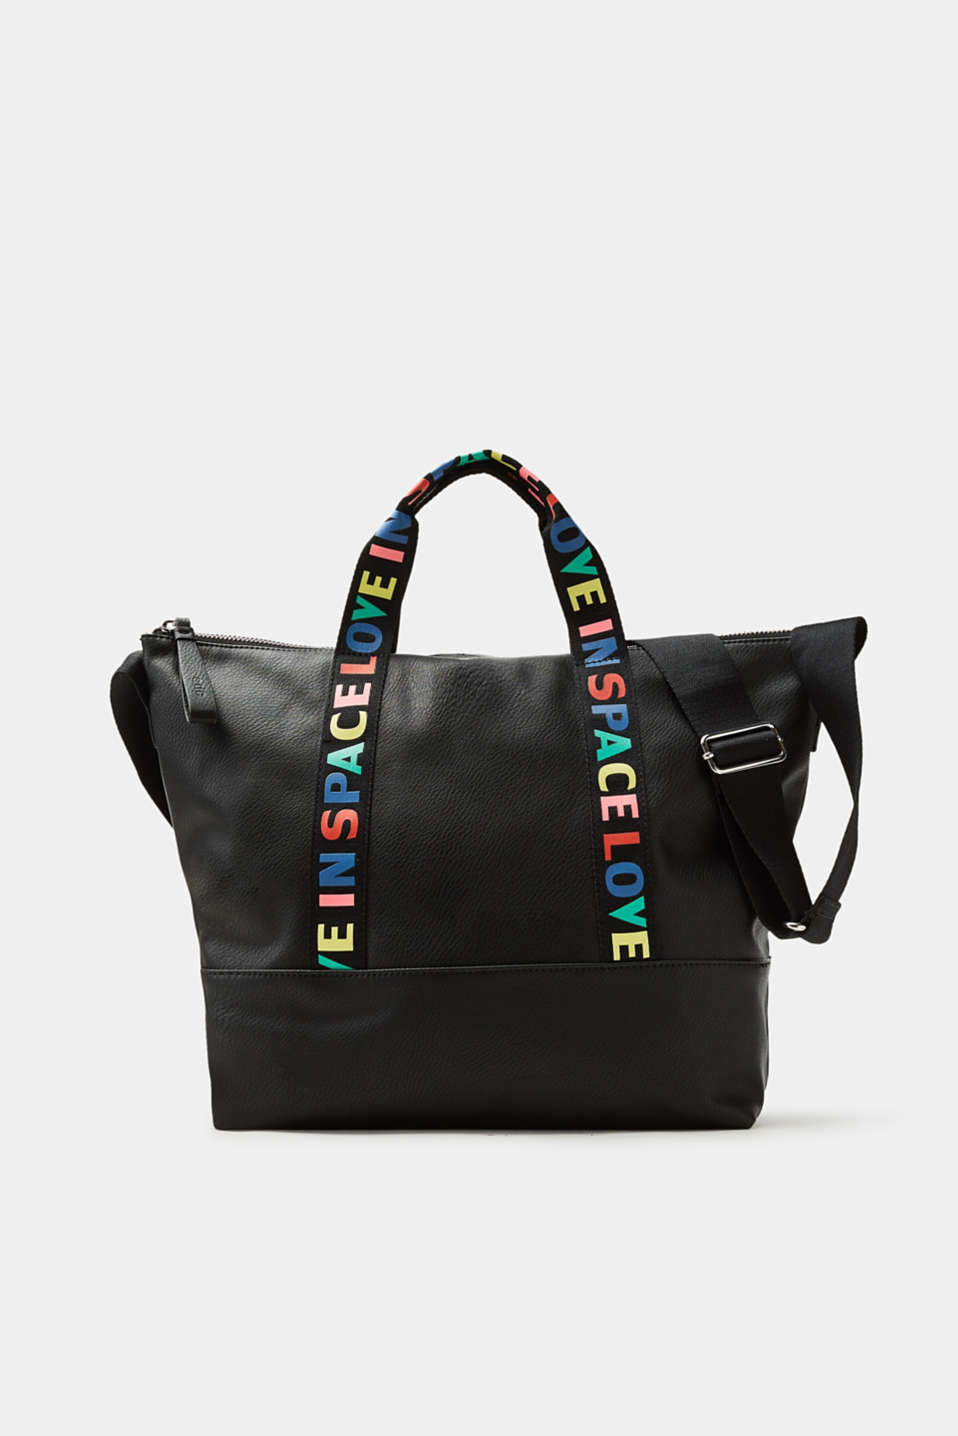 edc - Shopper bag with statement straps